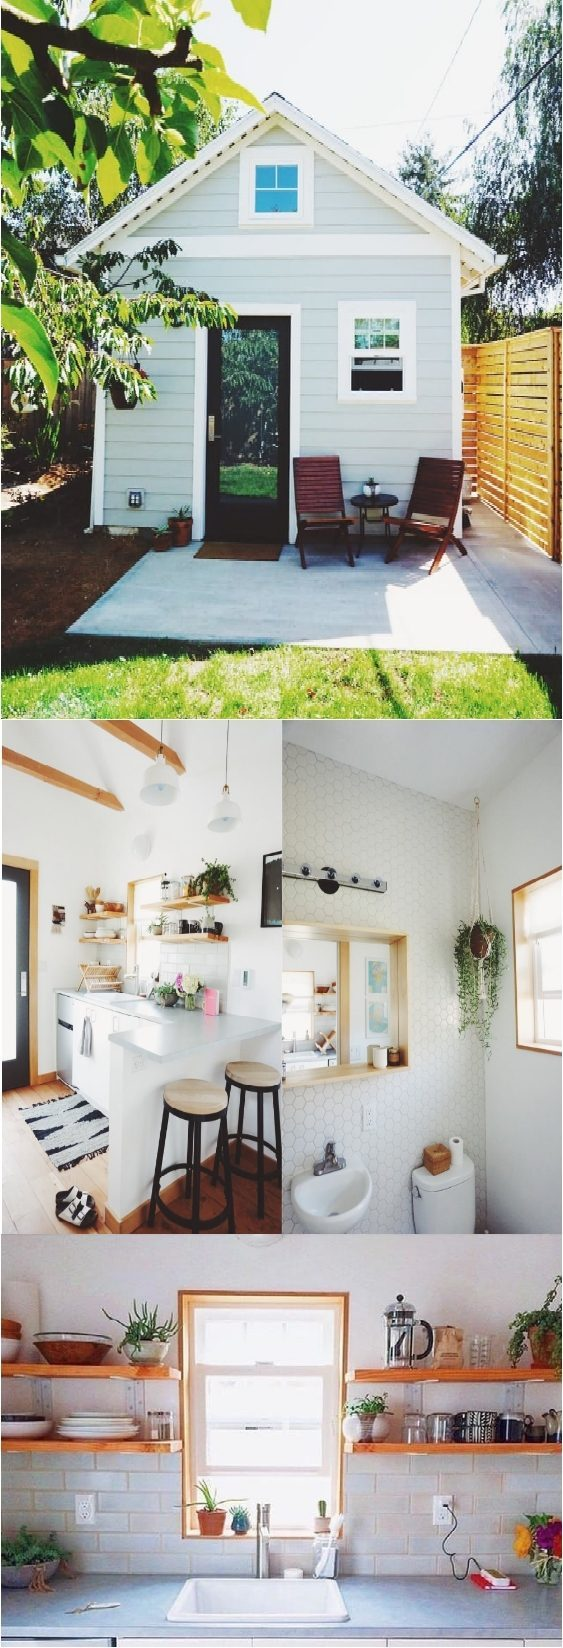 21 Small Homes with All the Comfort You Can Ask For